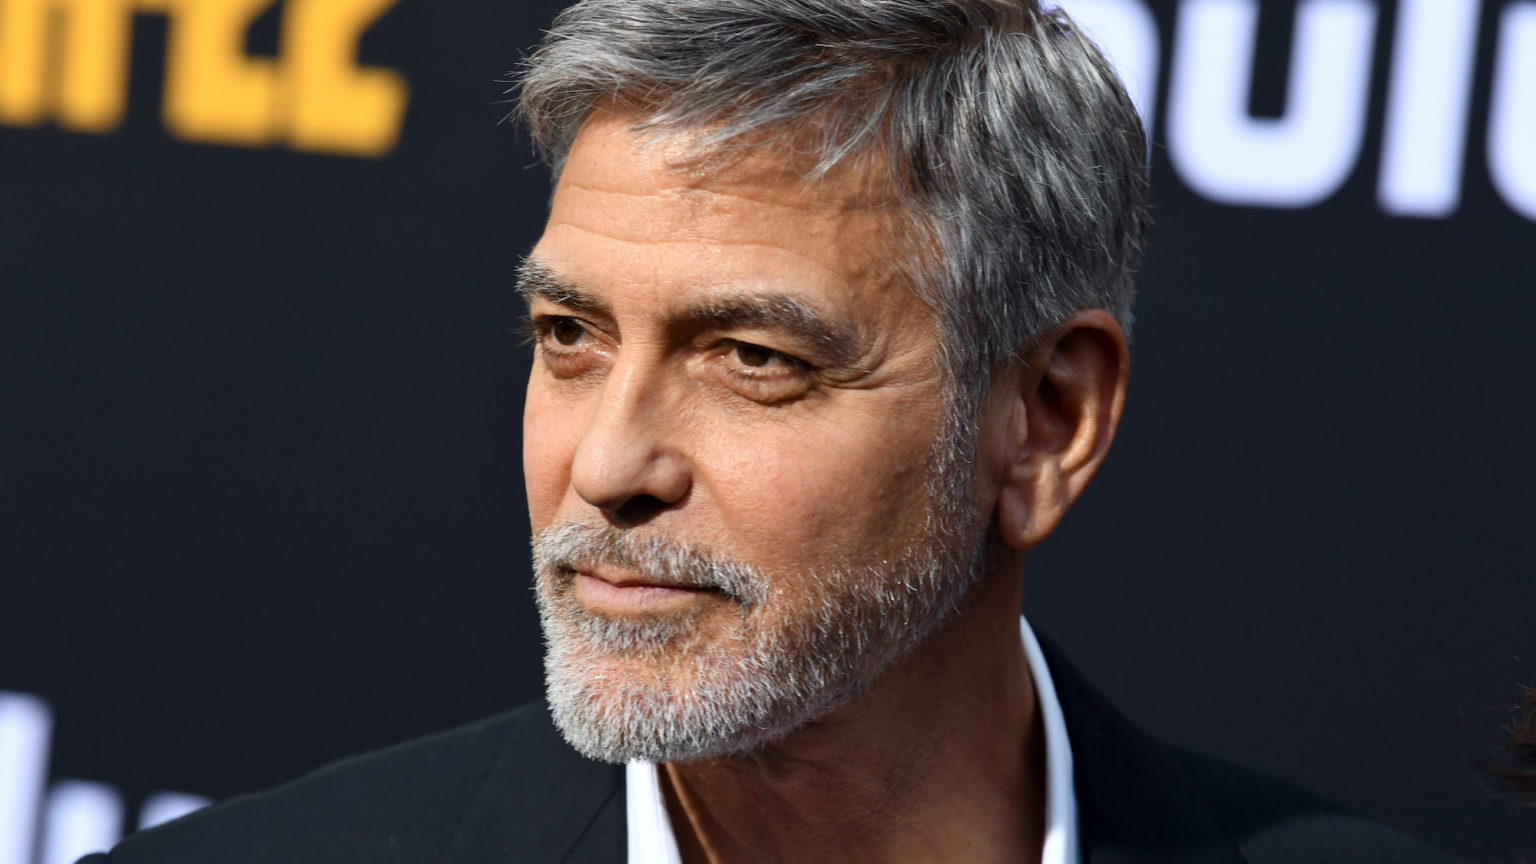 George Clooney and the new woke imperialism